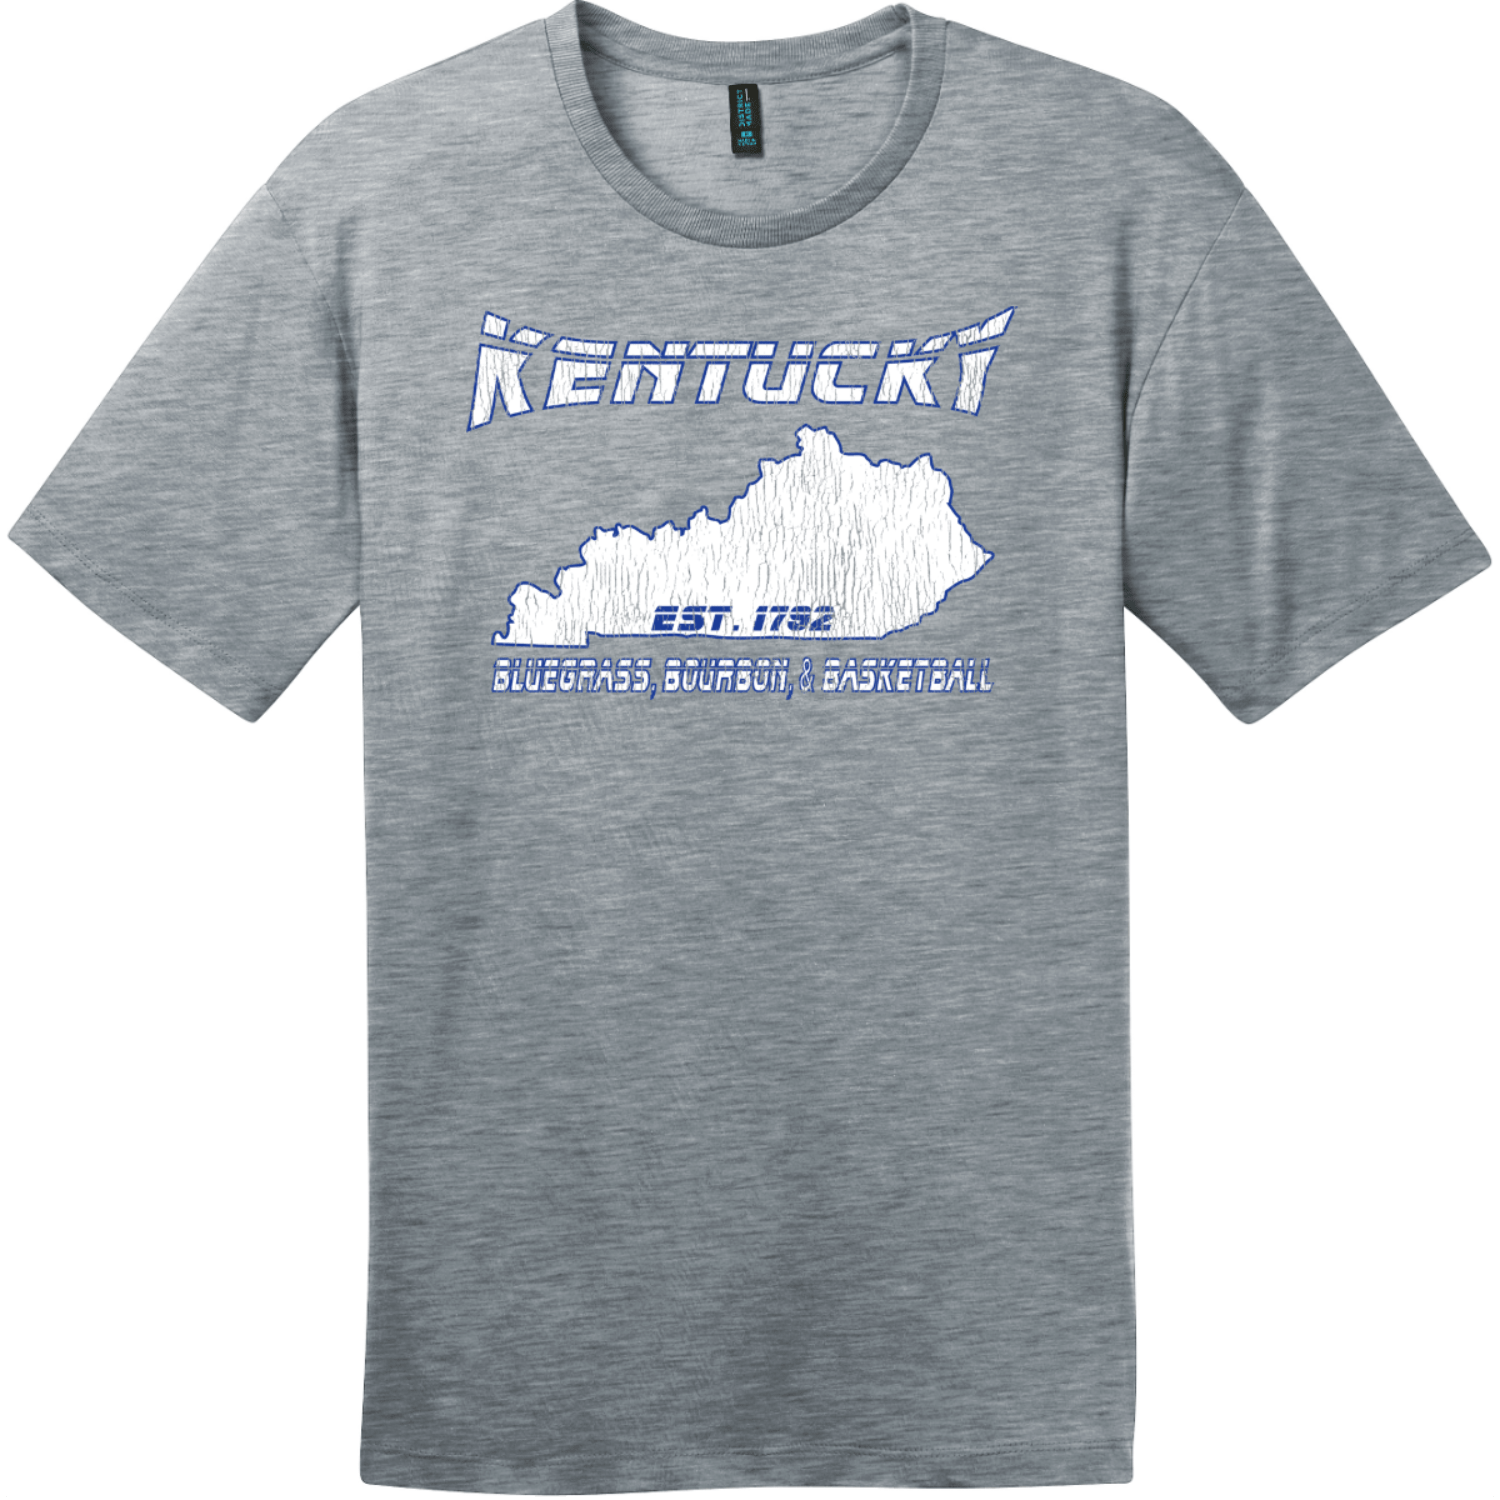 Kentucky Bluegrass Bourbon and Basketball Tee Heathered Steel District Perfect Weight Tee DT104